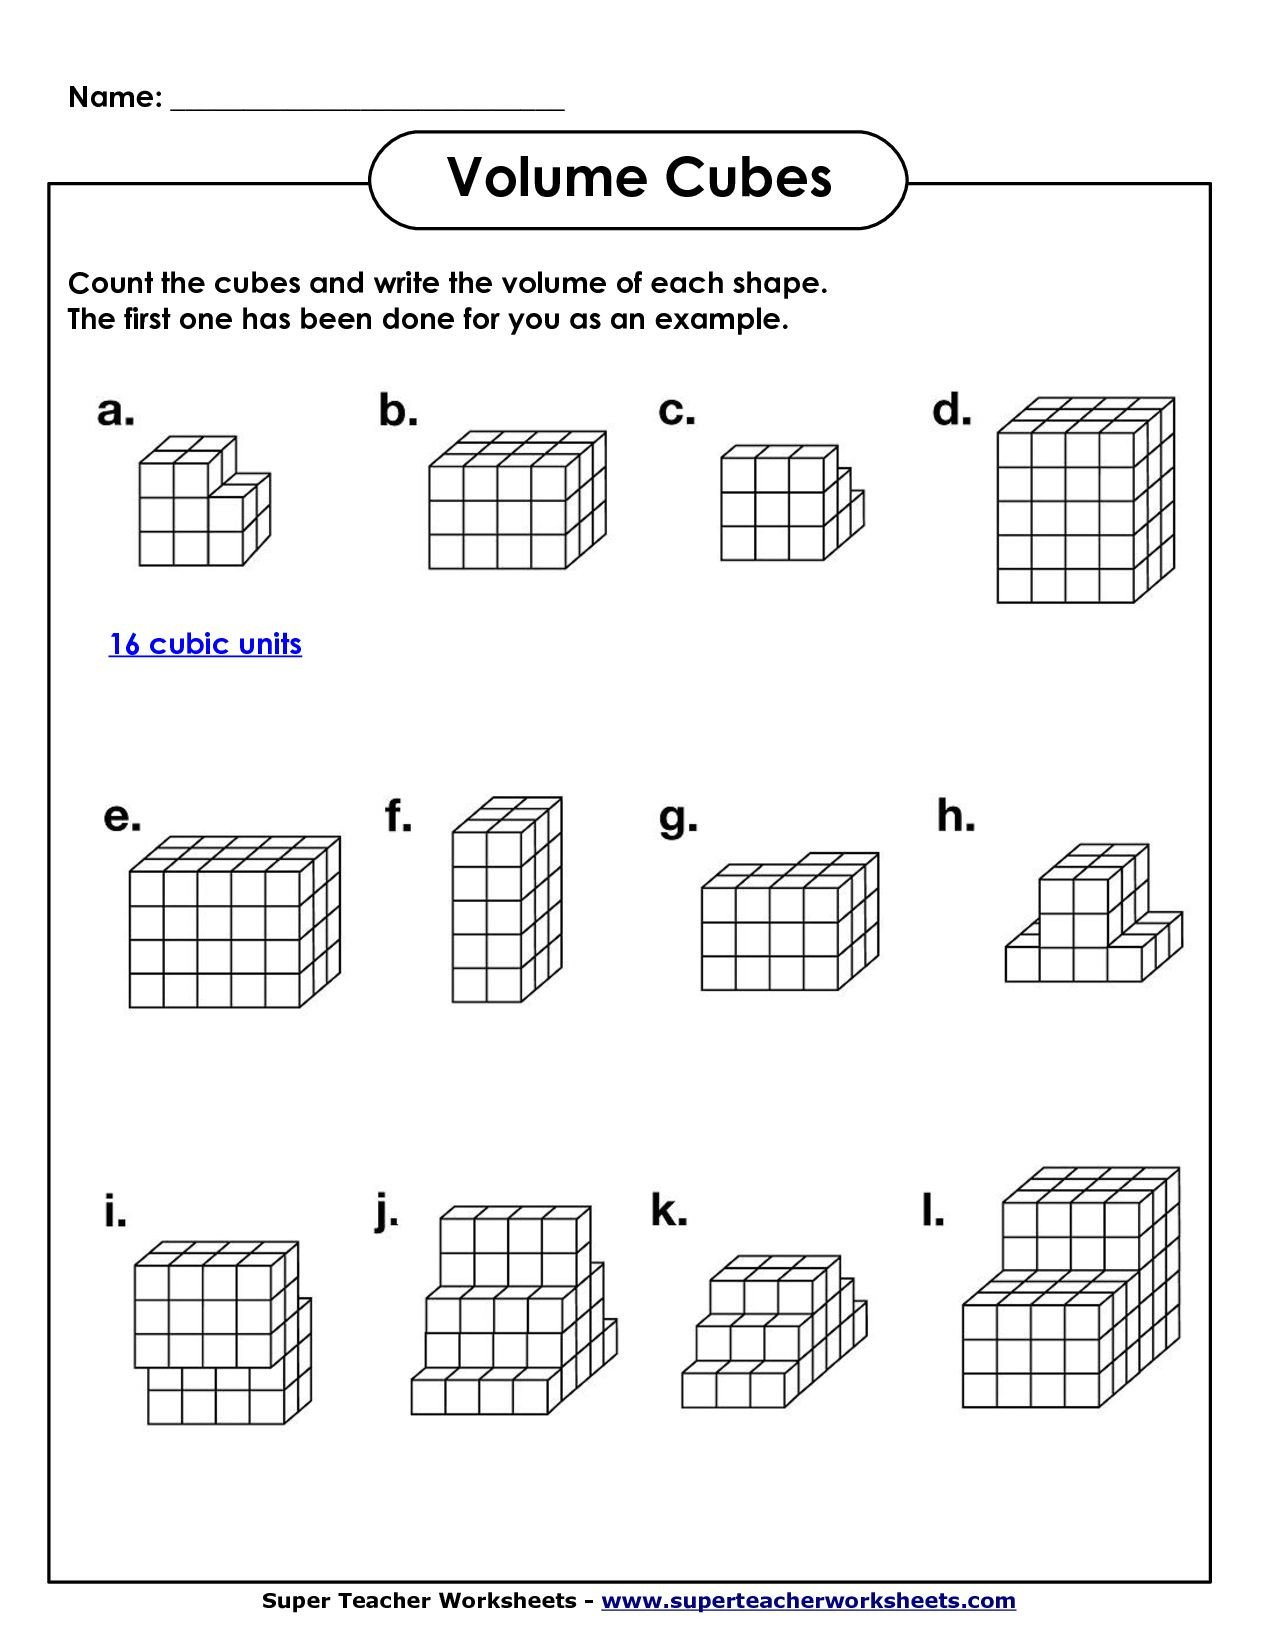 Volume Of Irregular Shapes Worksheet Image From